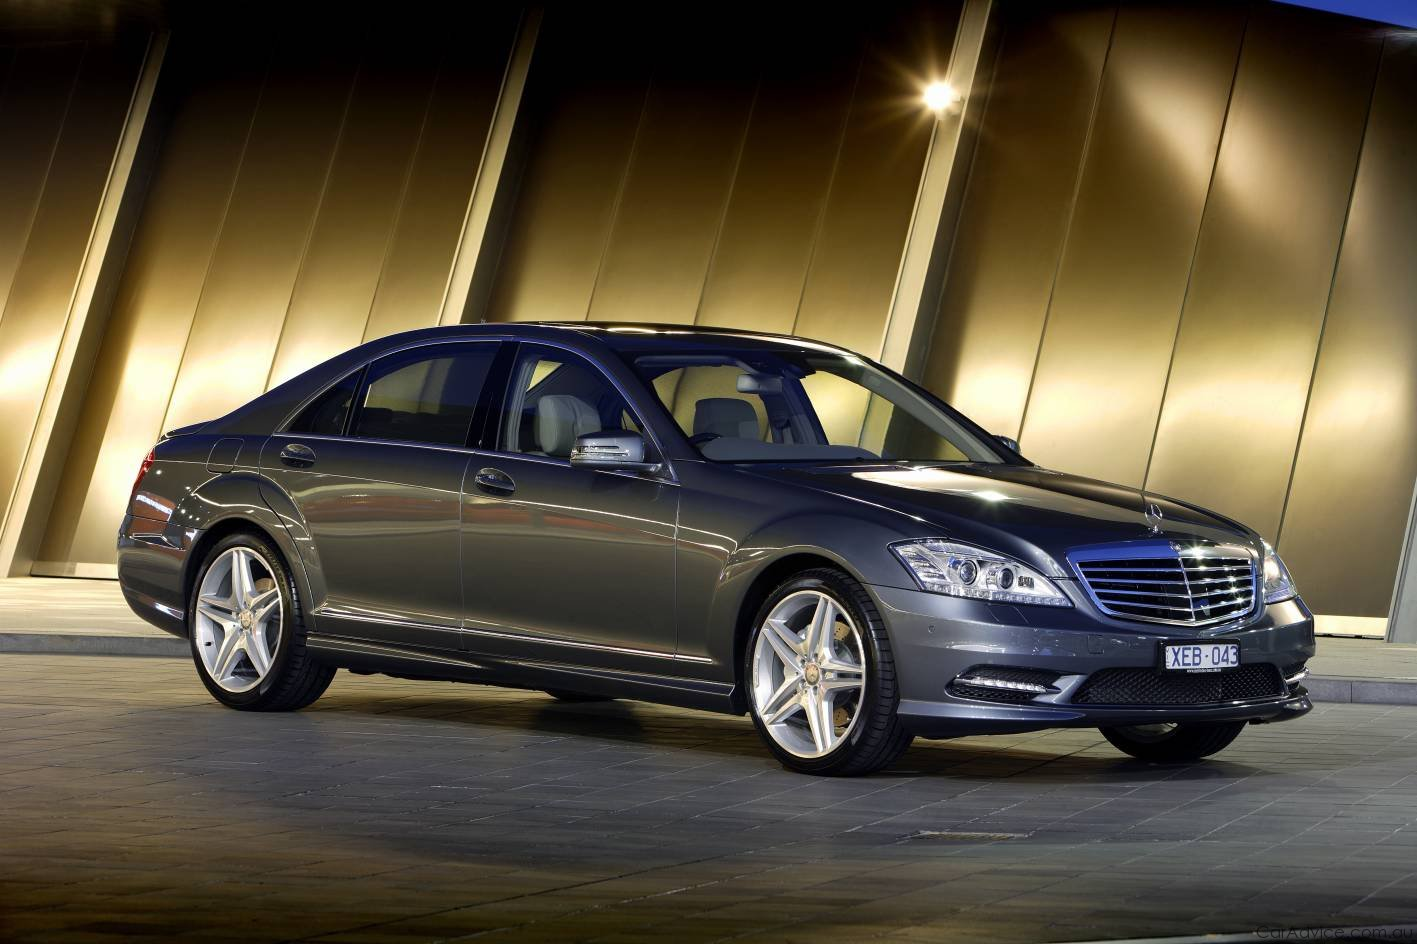 2009 Mercedes-Benz S-class Sedan 4-door